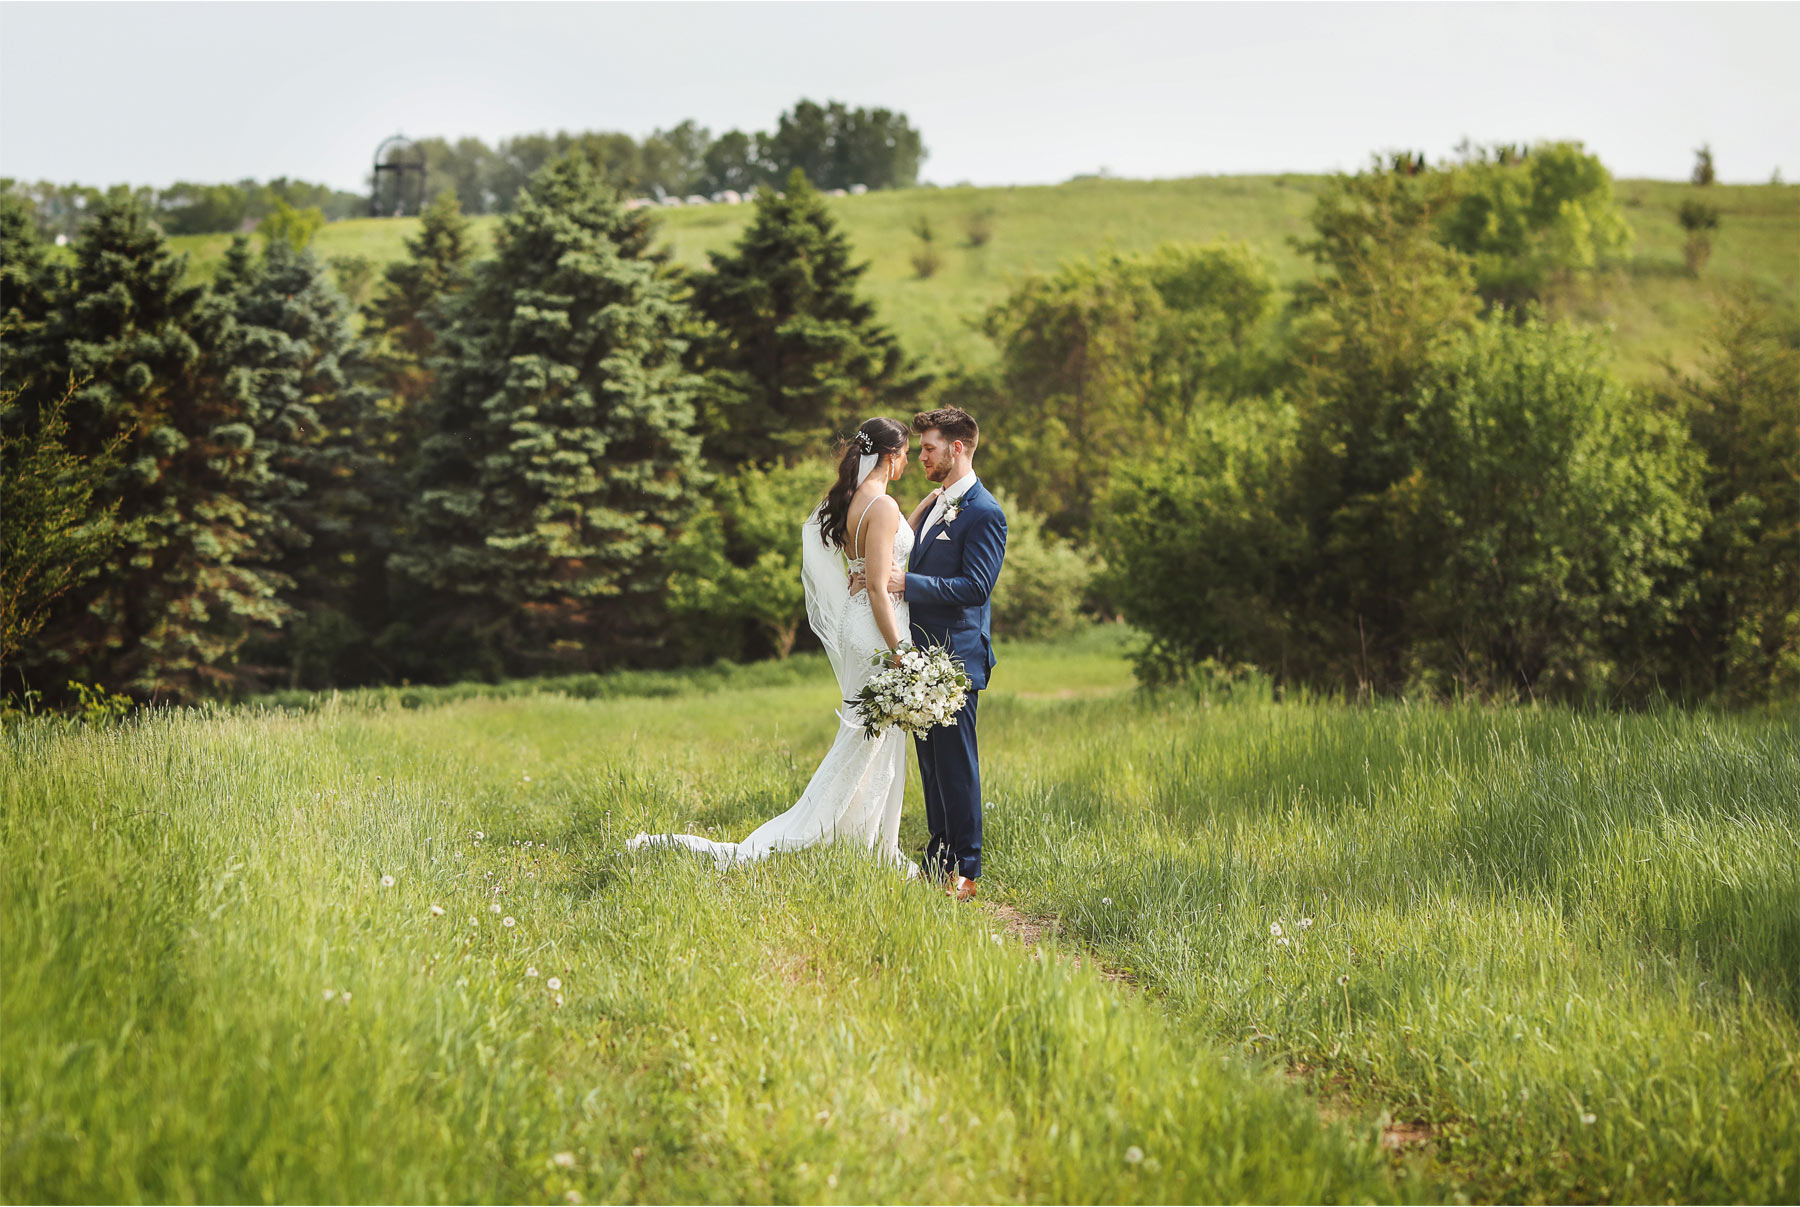 14-Minneapolis-Minnesota-Wedding-Andrew-Vick-Photography-Bavaria-Downs-Bride-Groom-Summer-Field-Paige-and-Blake.jpg